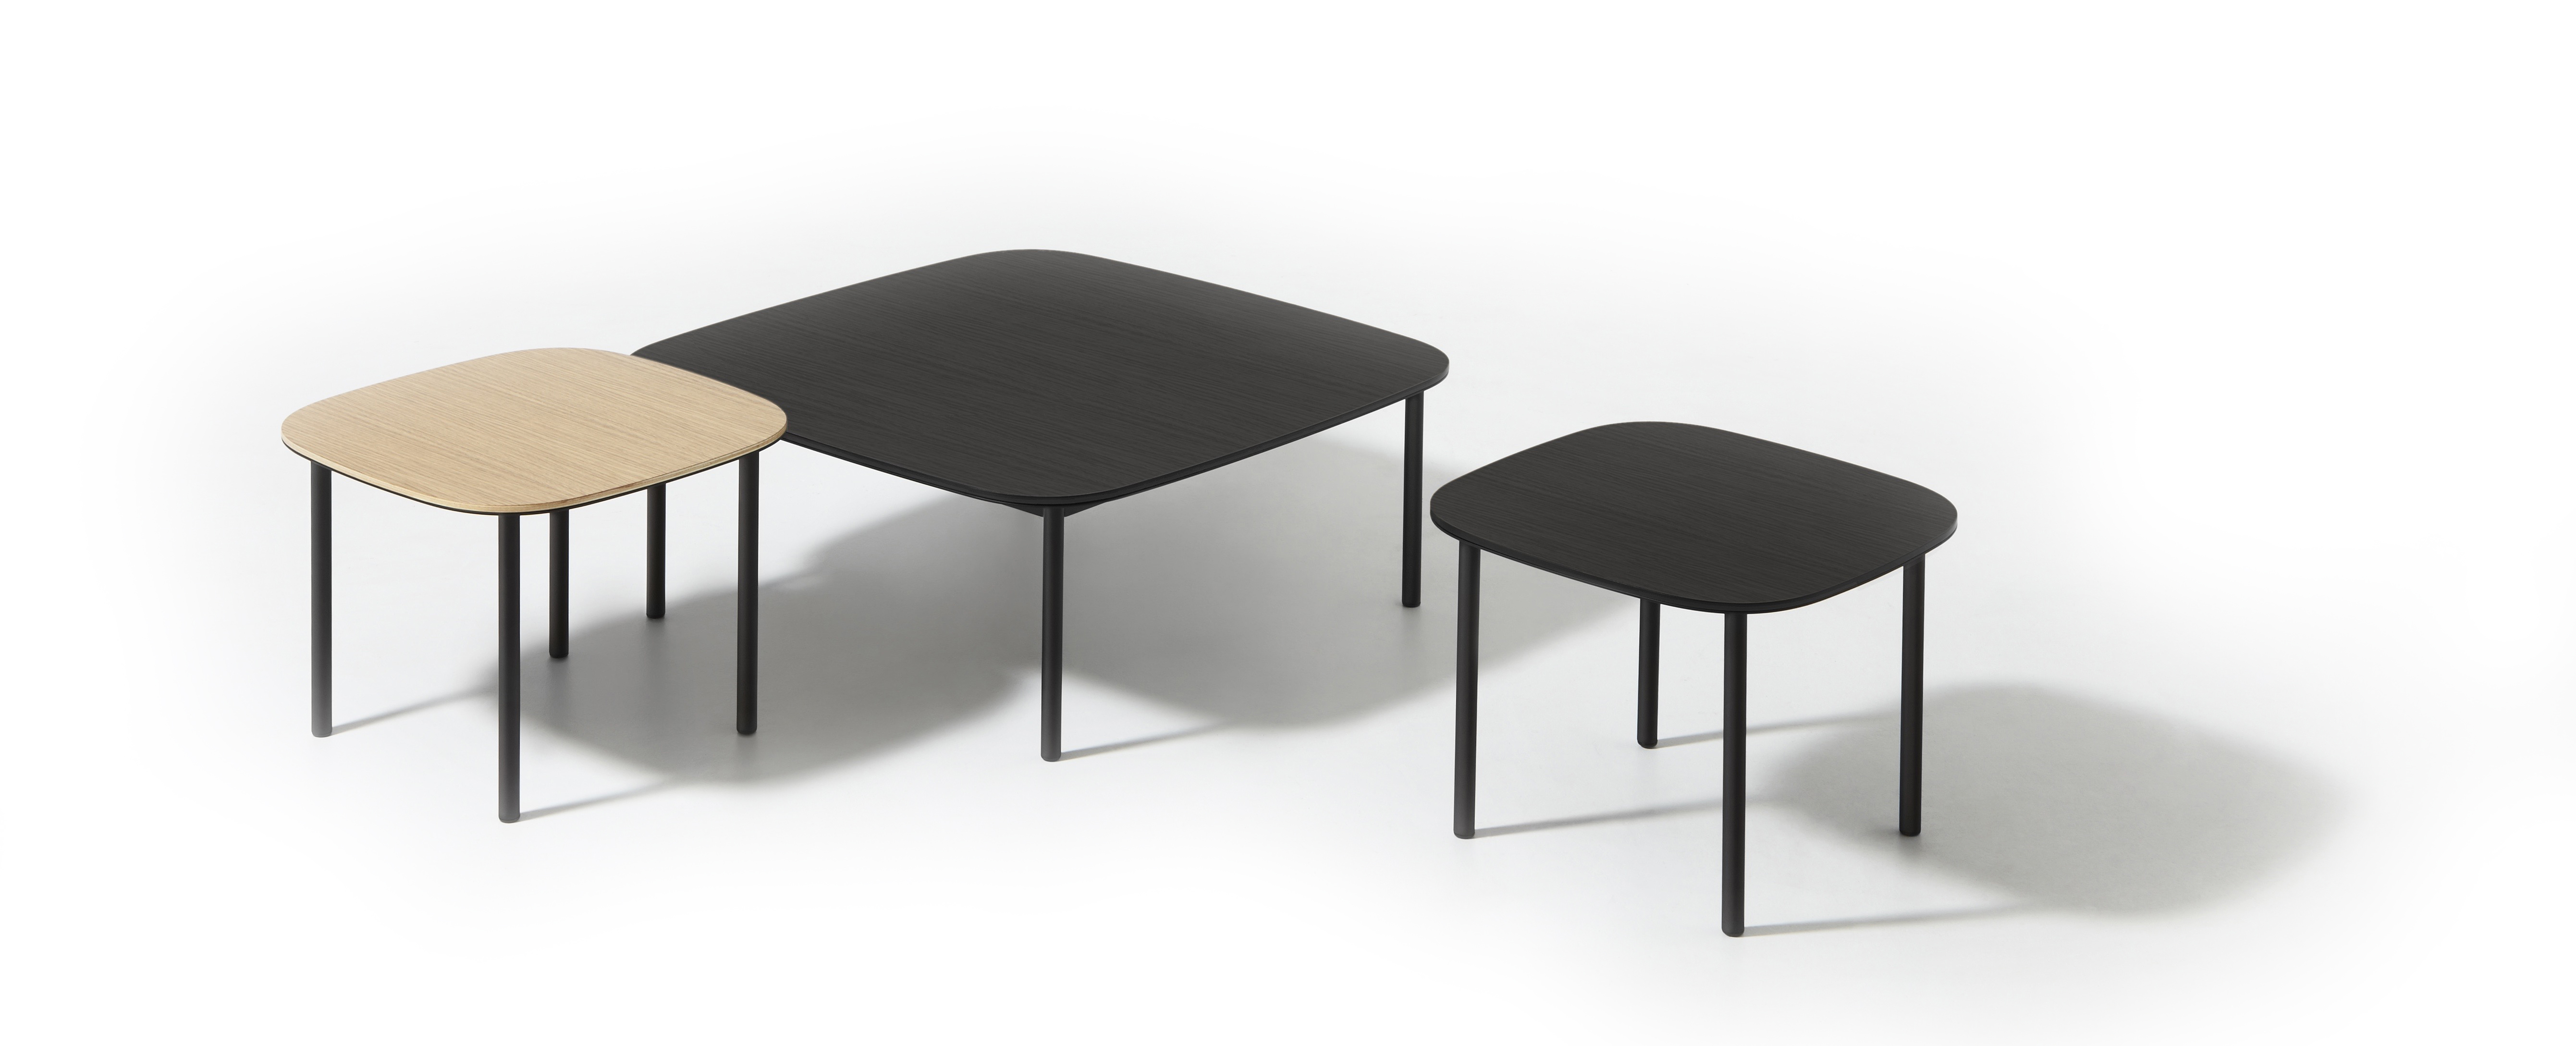 Elevation tables: practical and robust design in dining, coffee and side table sizes. Photo: © David Moreland Design